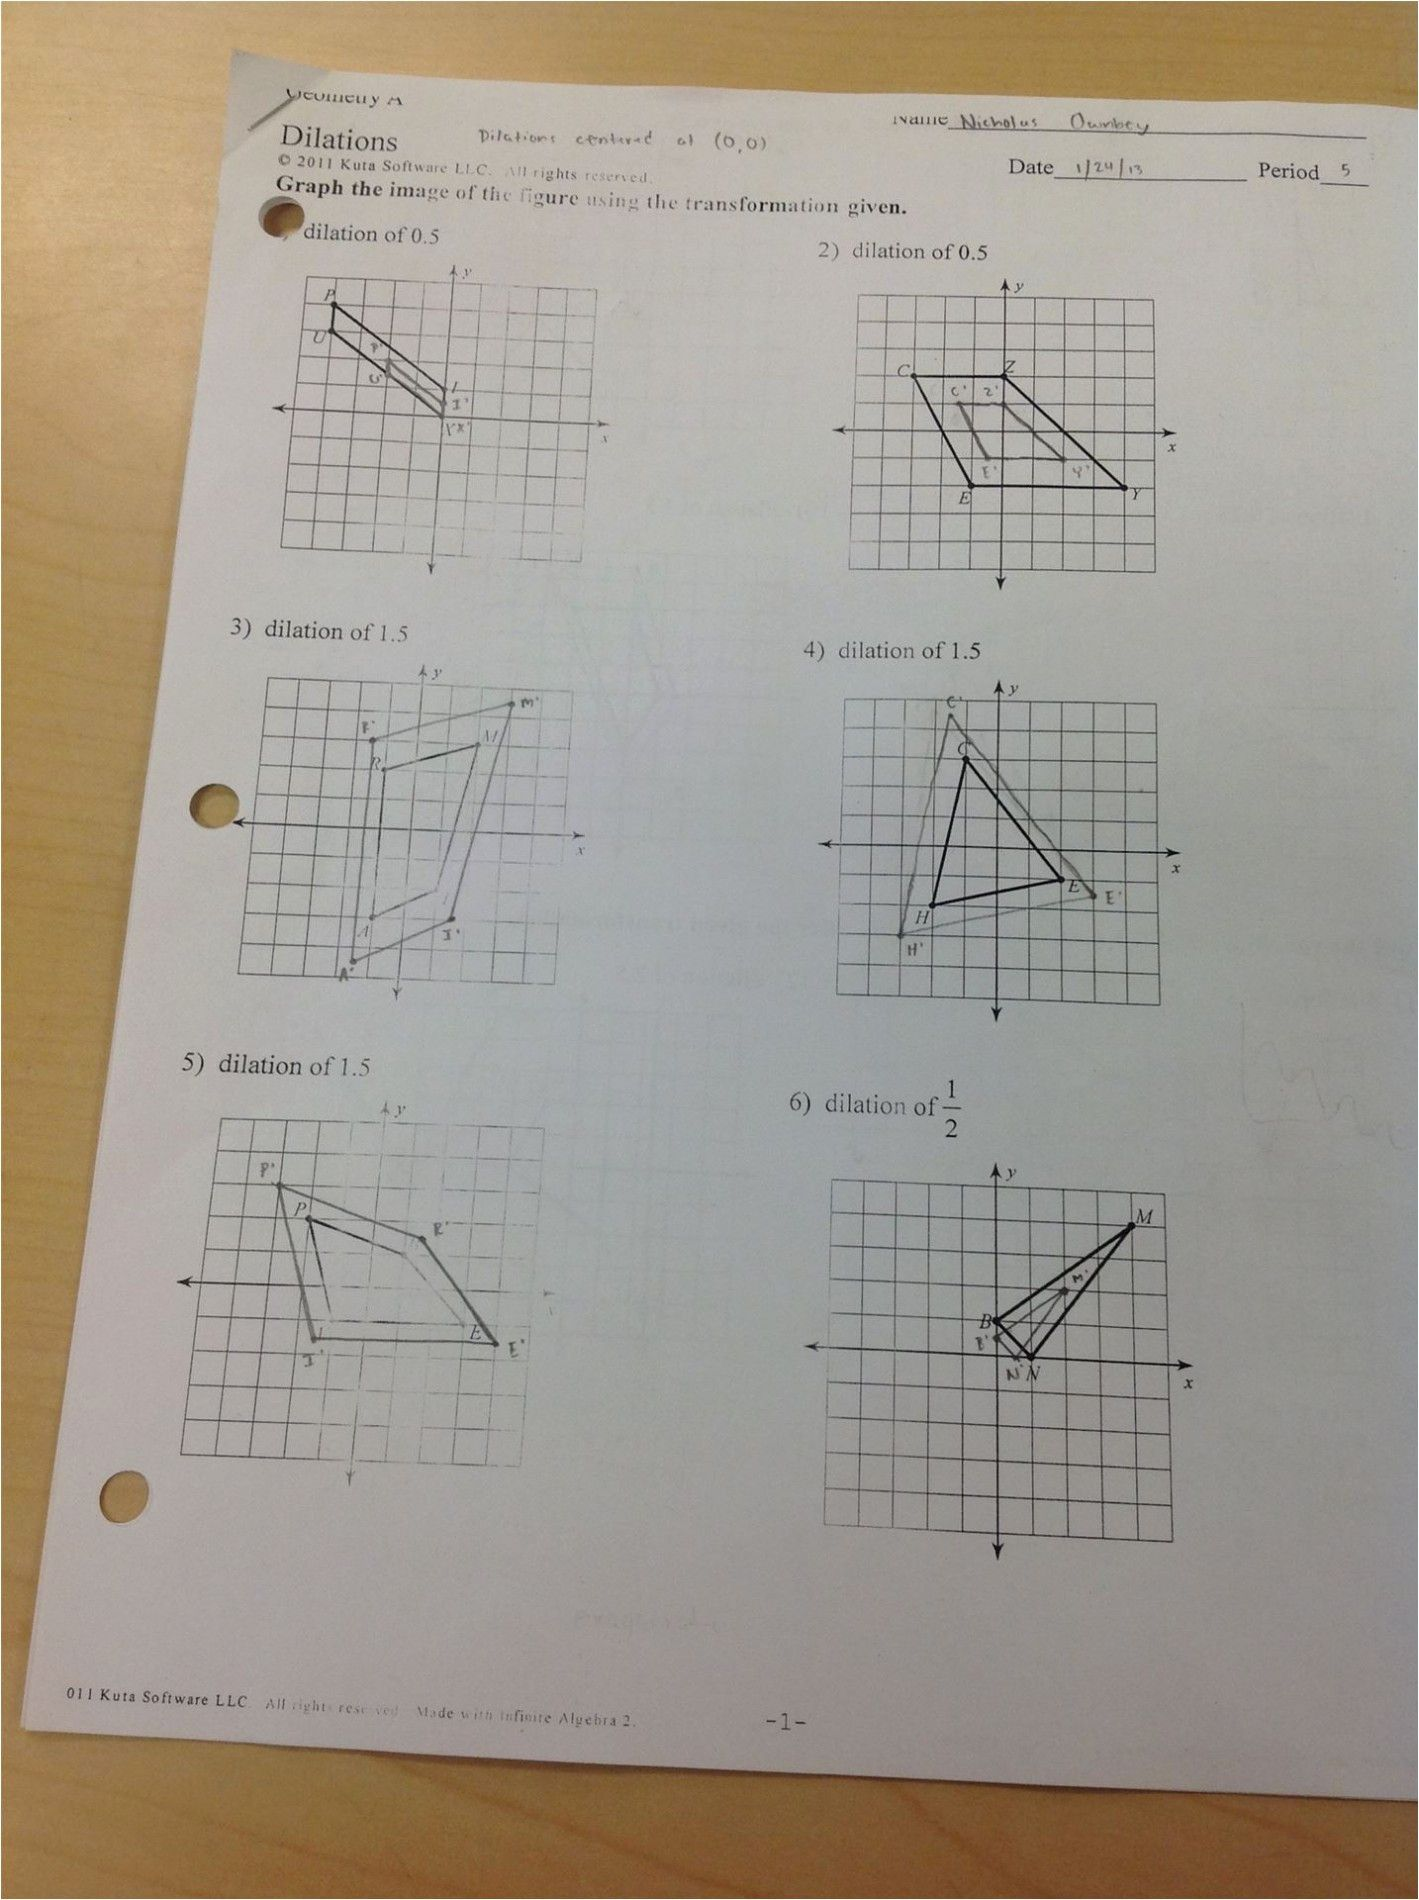 Formal Dilations Worksheet Answers